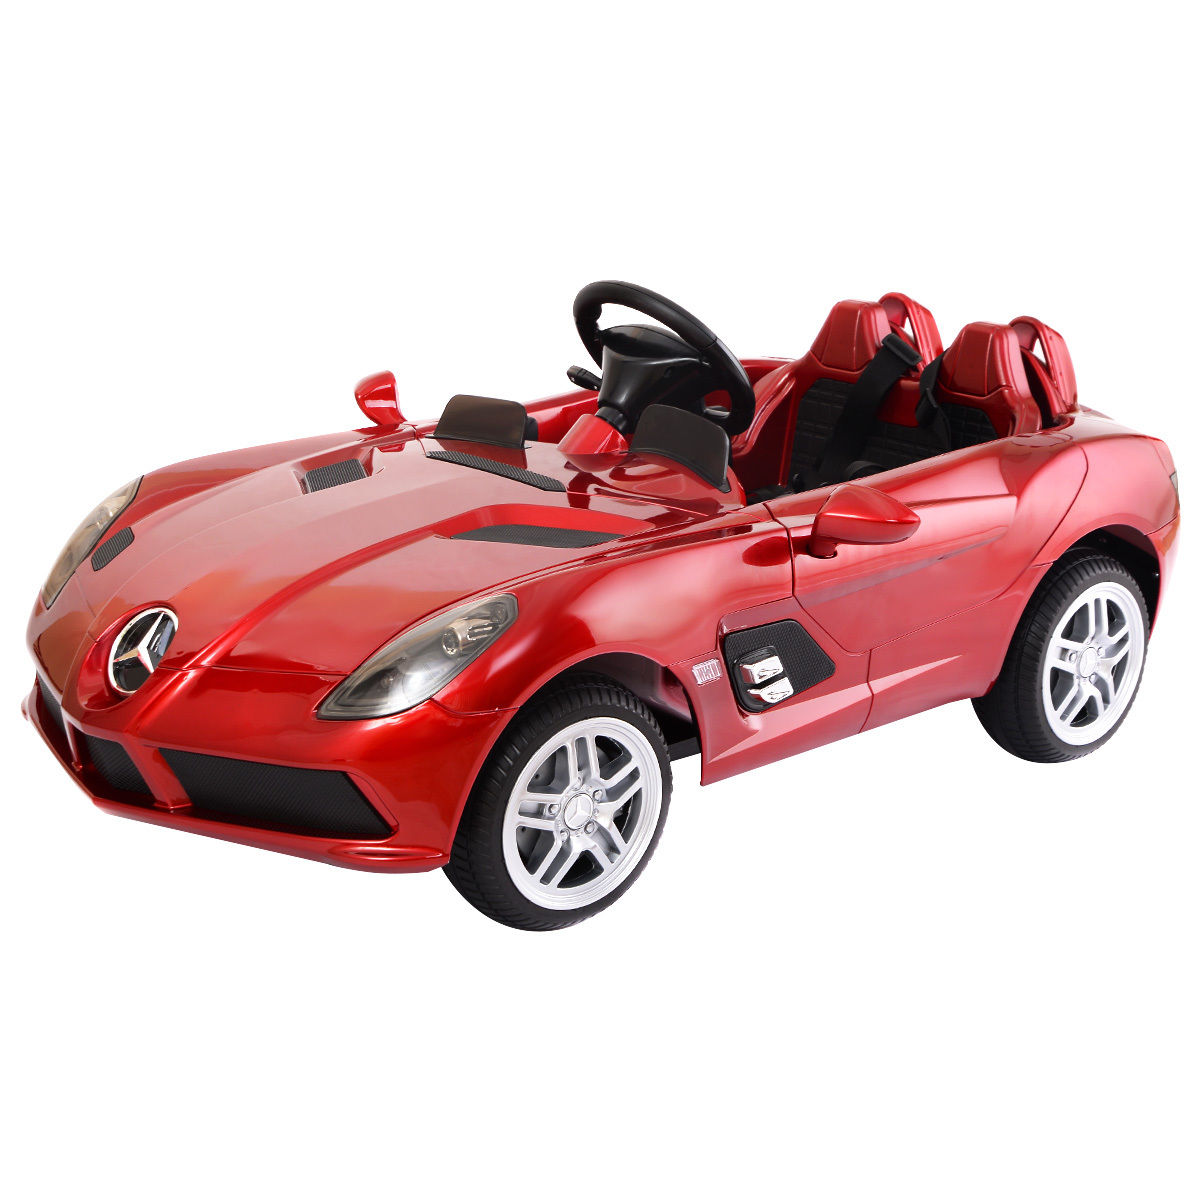 Costway Mercedes Benz Z199 12V Electric Kids Ride On Car Licensed MP3 RC Remote Control